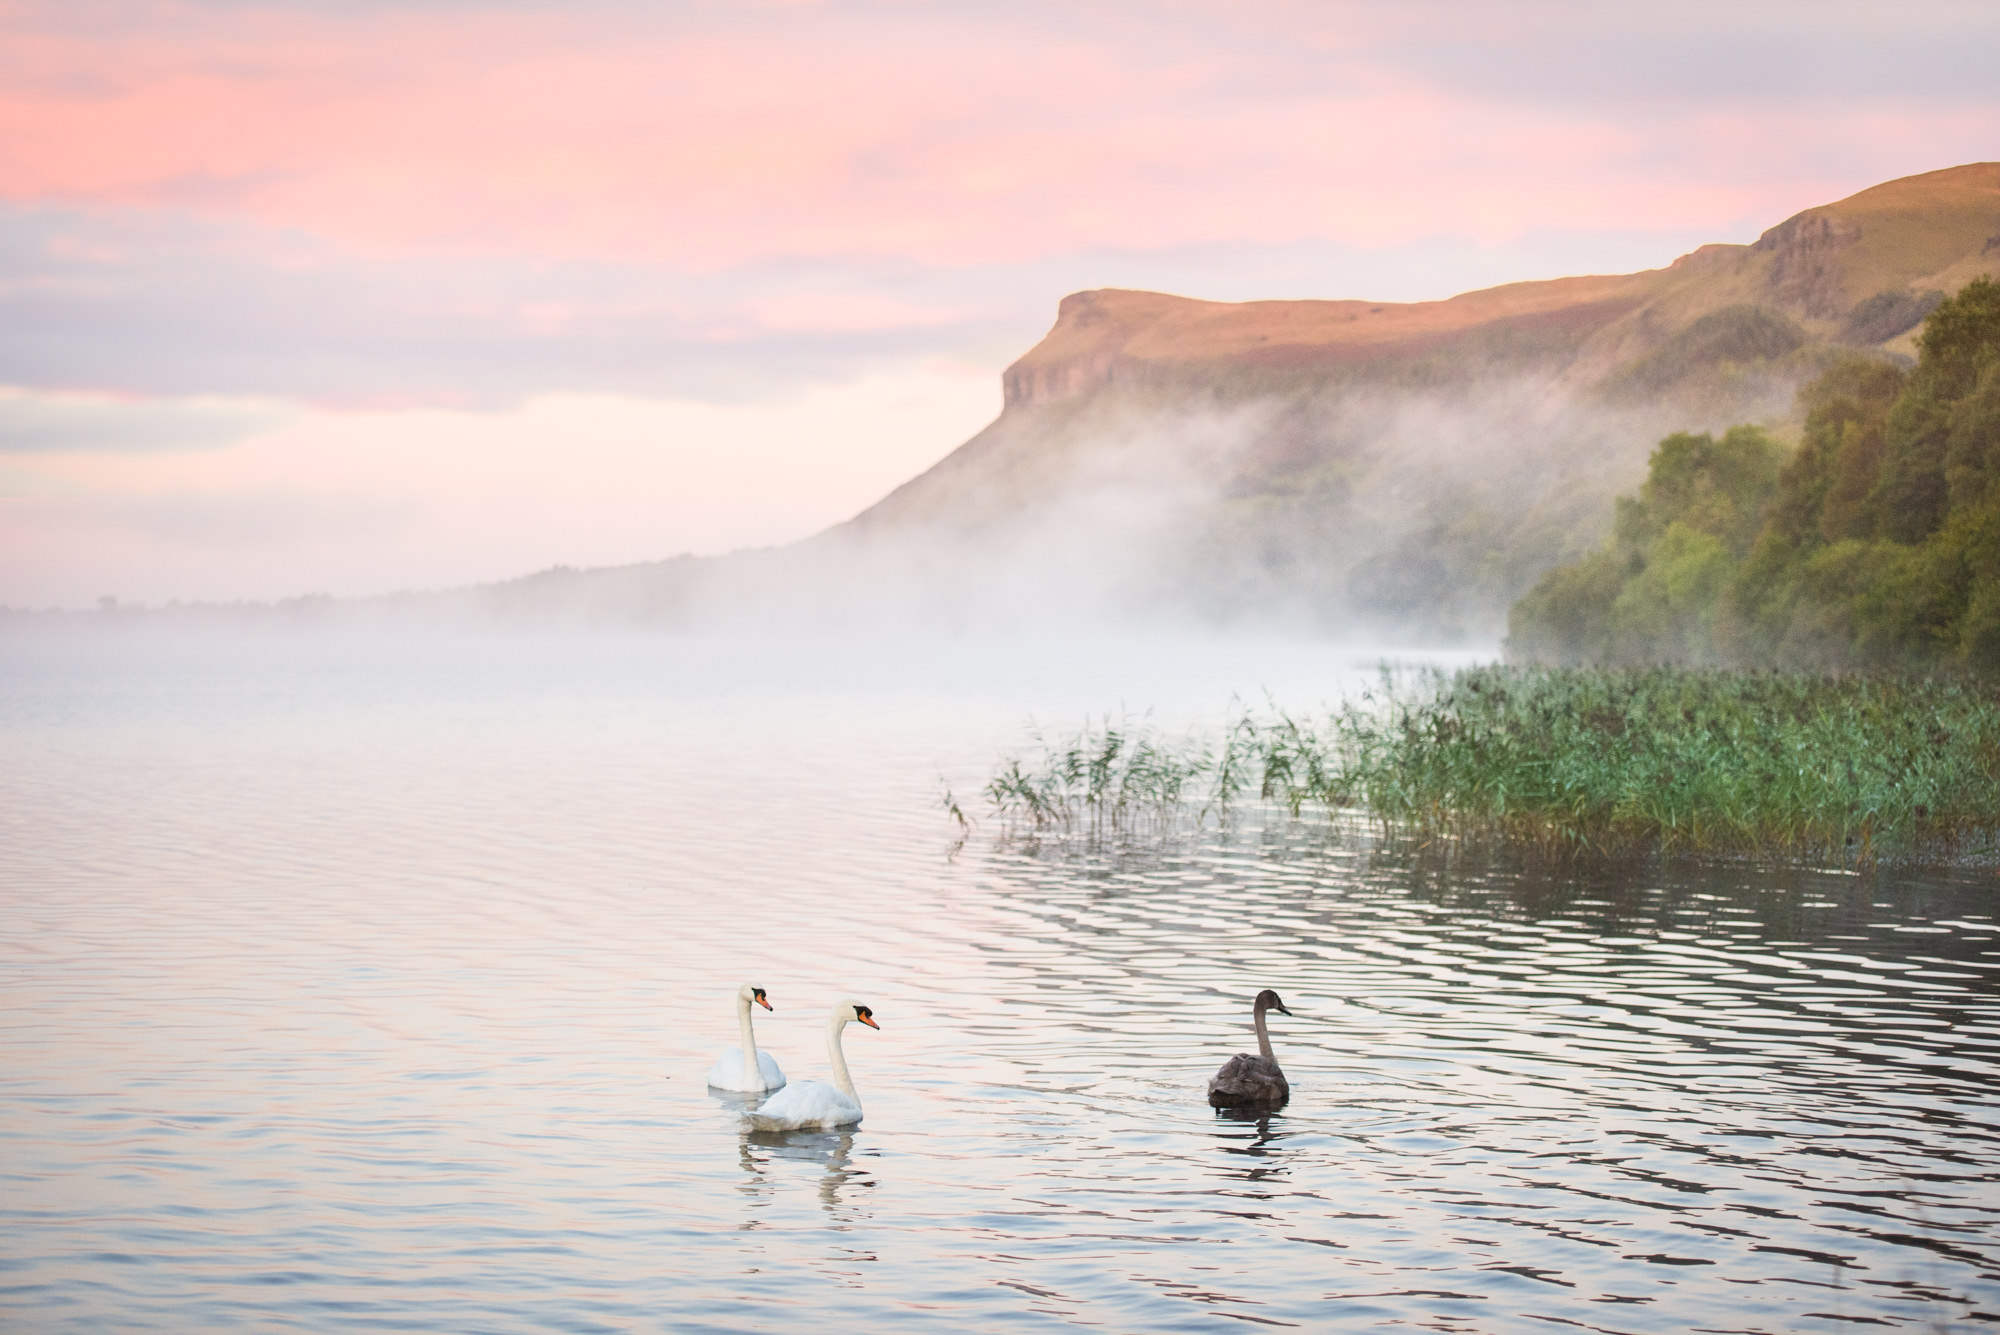 Swans on Glencar Lake at sunrise